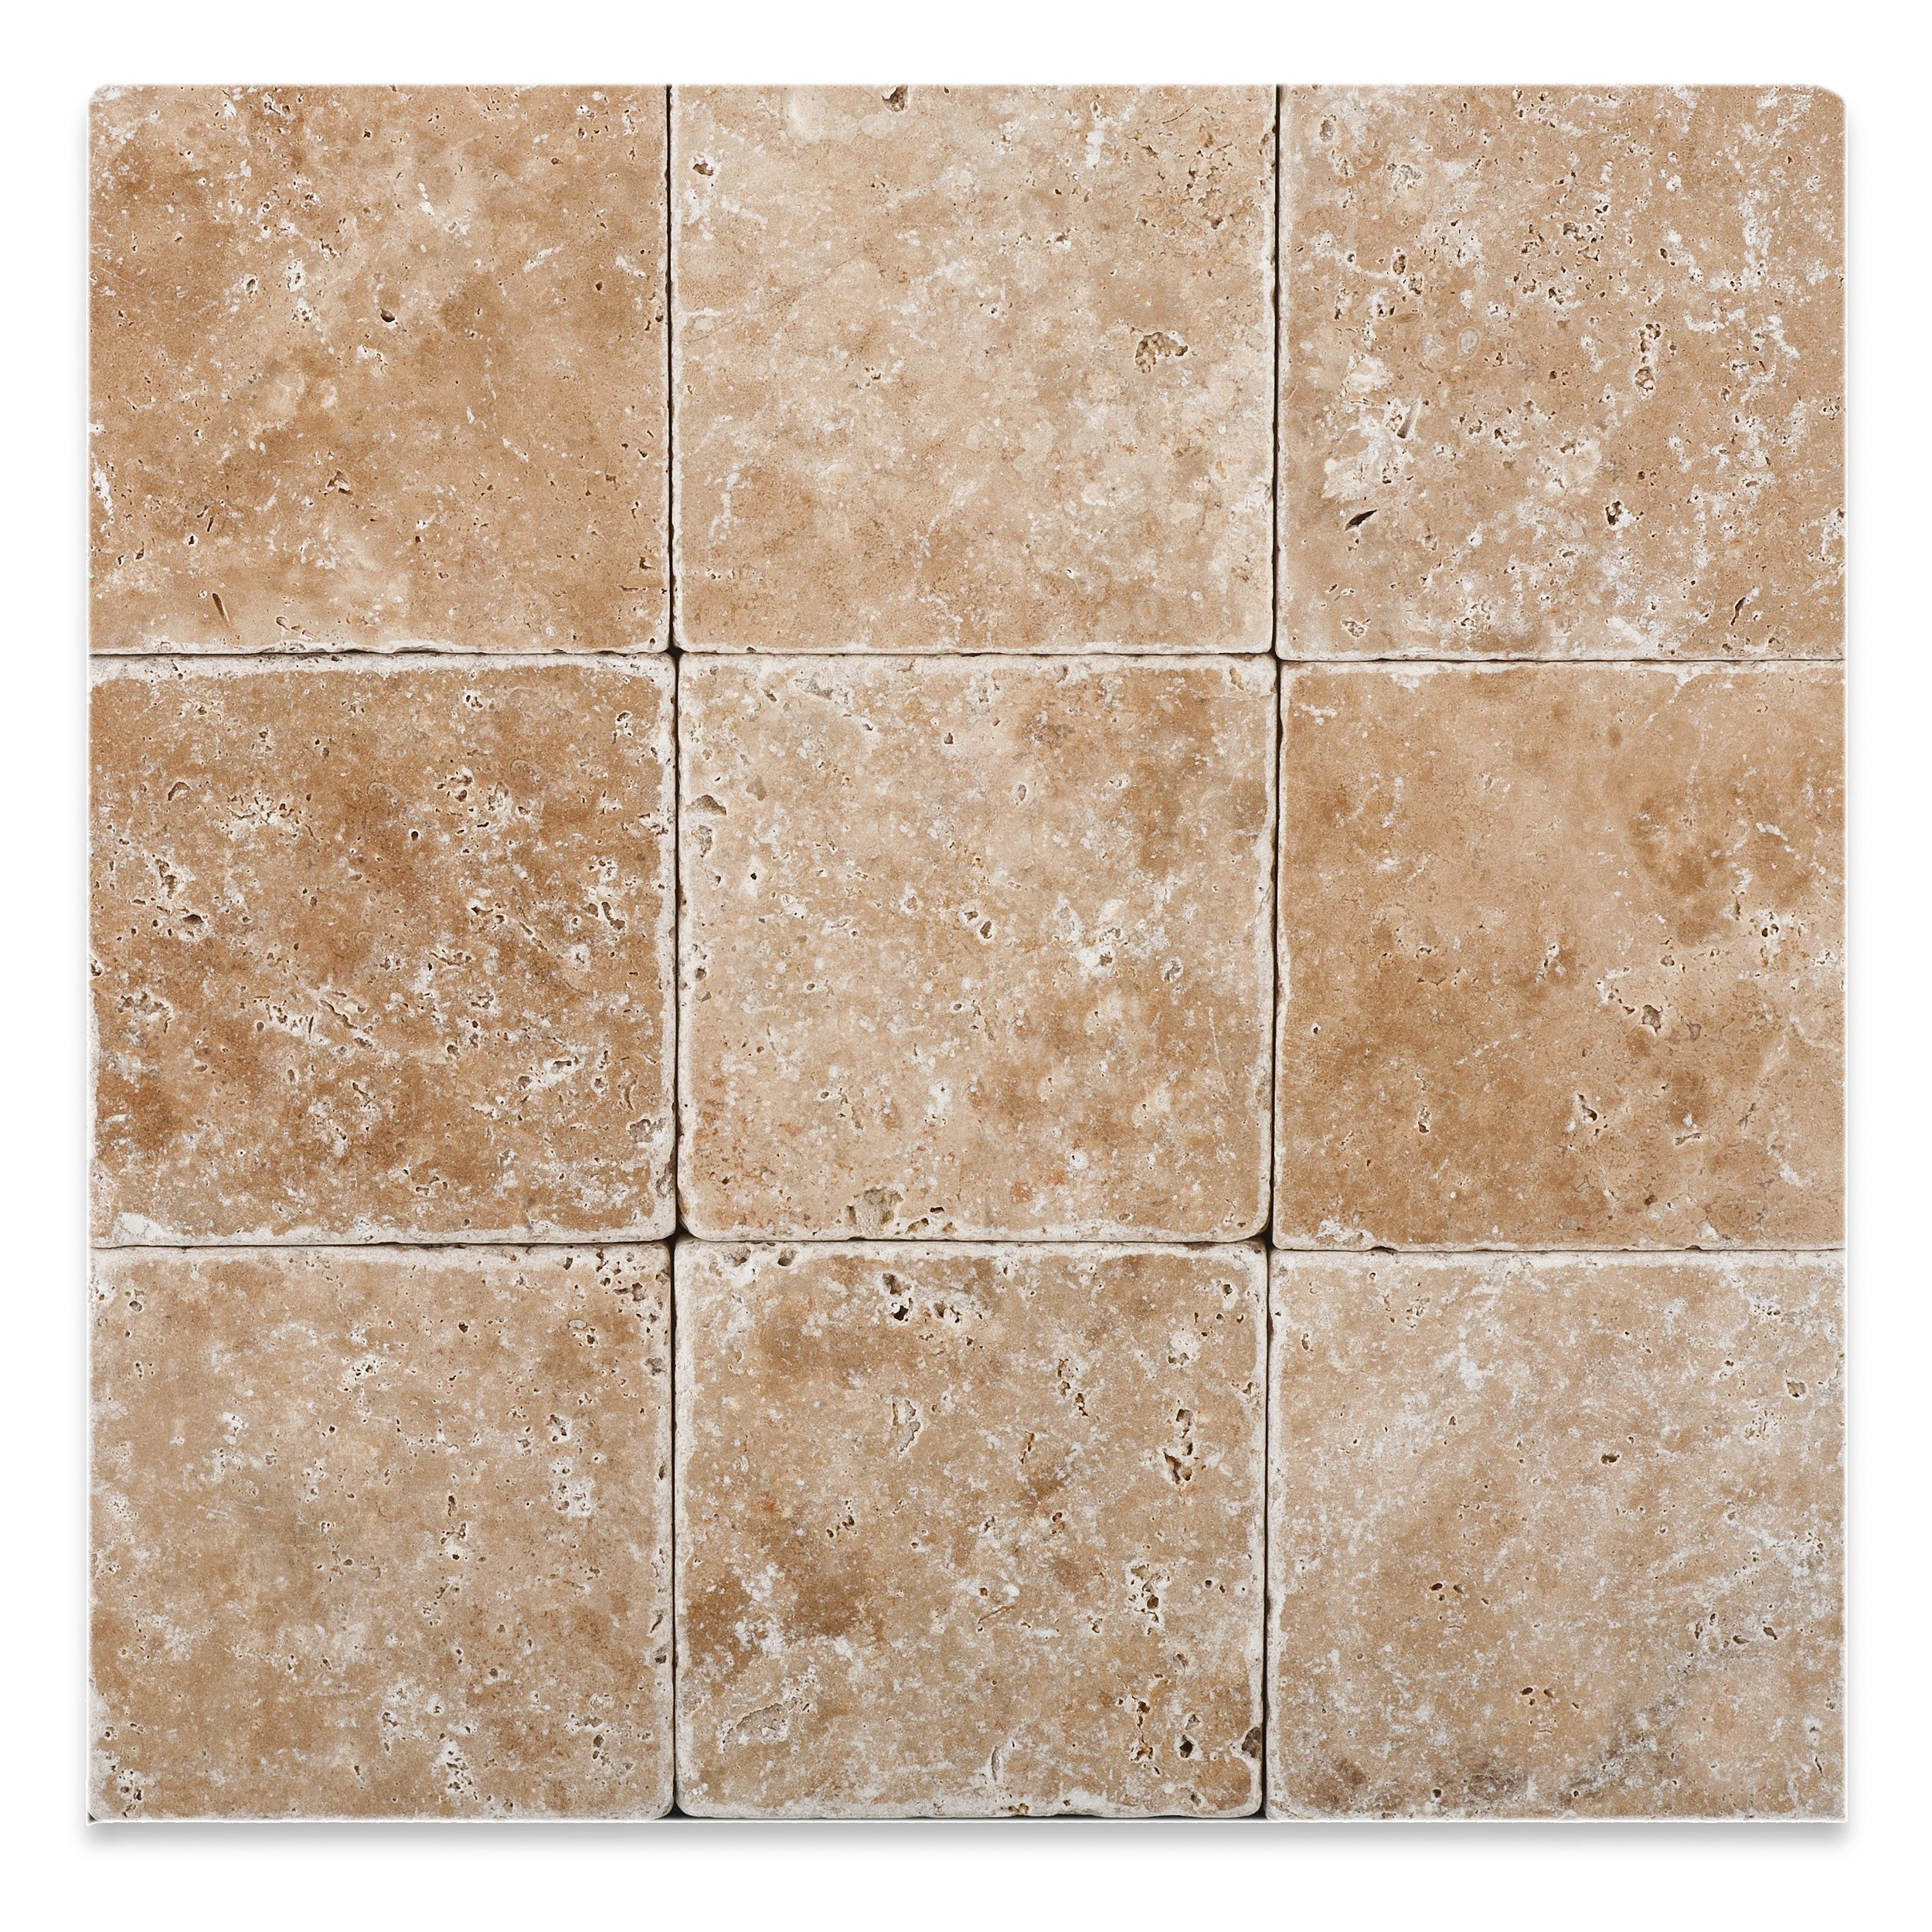 Walnut Travertine 4 X 4 Tumbled Field Tile - Box of 5 sq. ft.